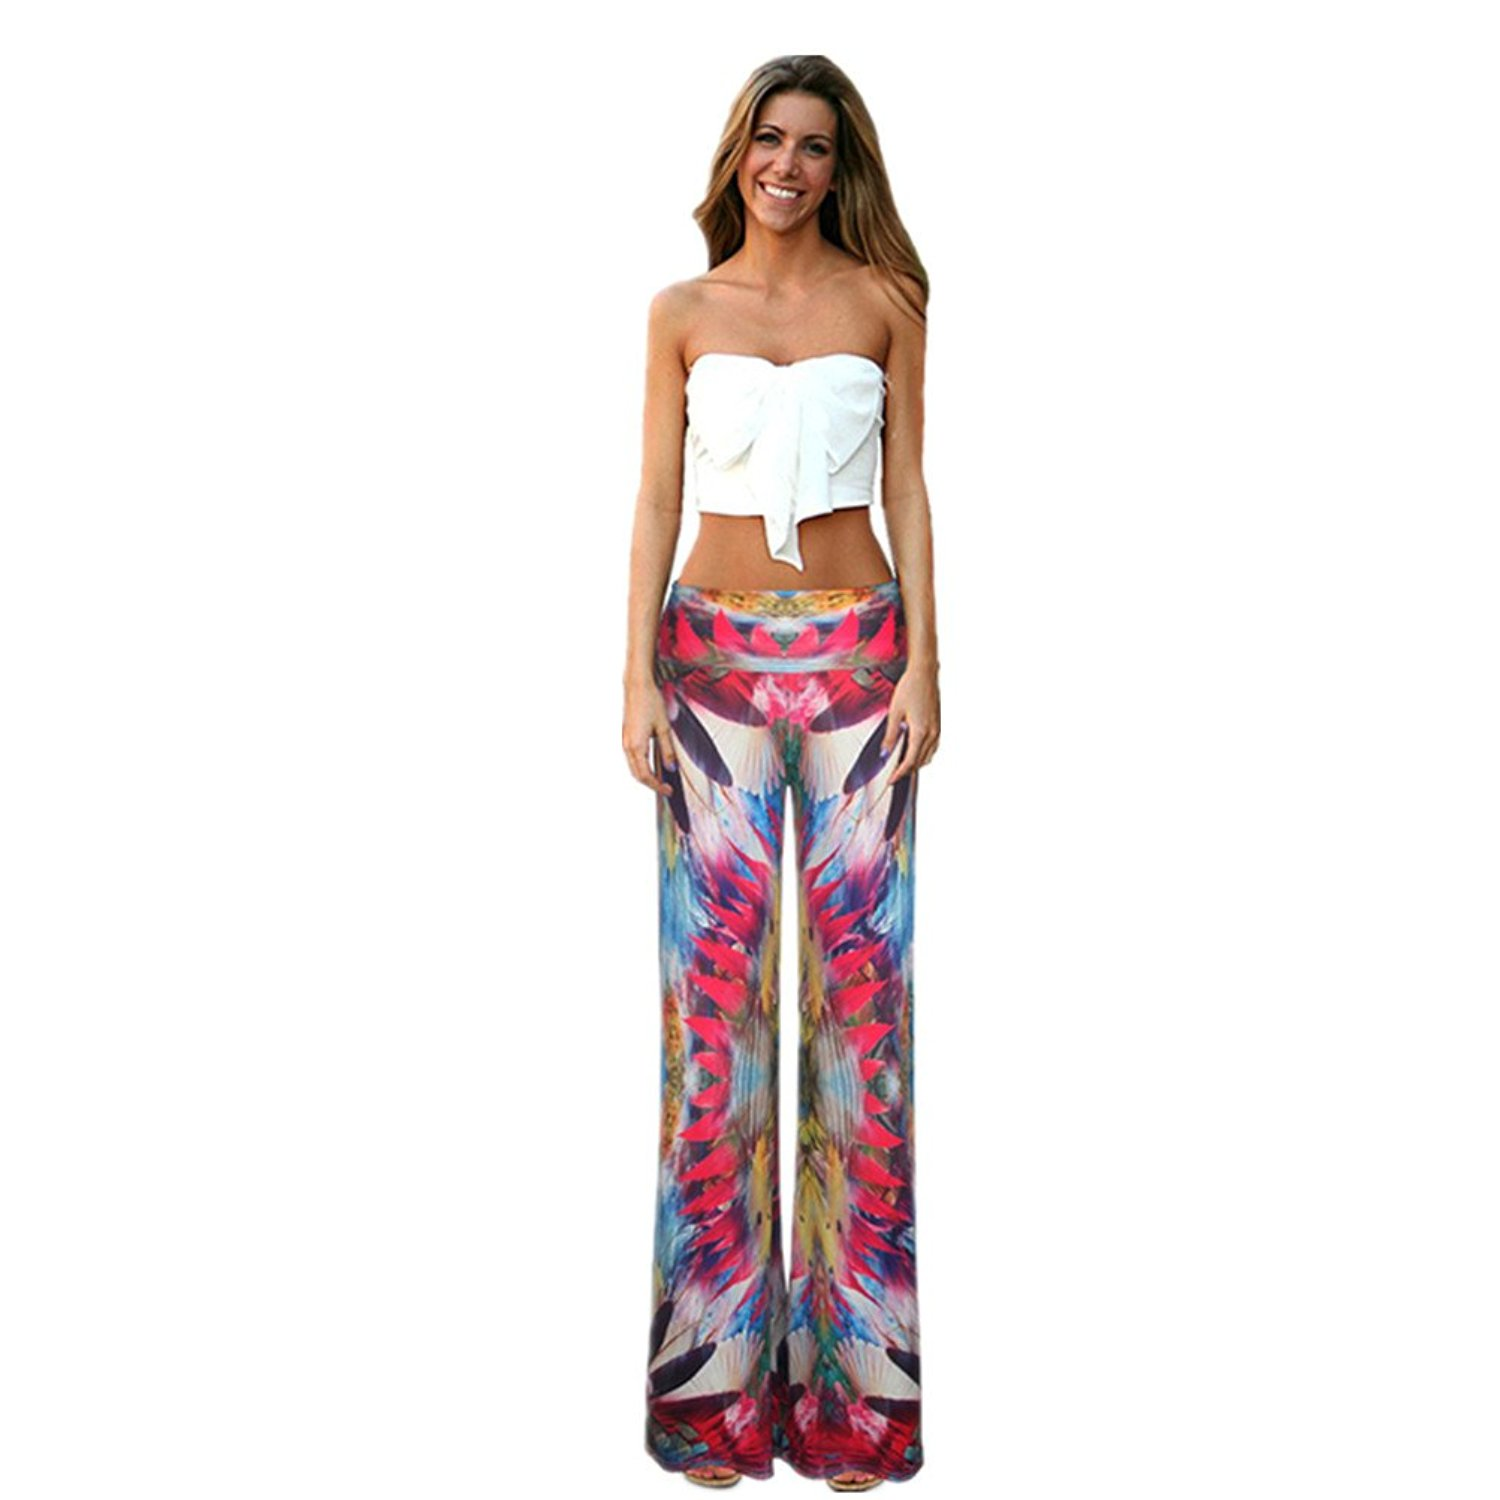 3437a27d7 Get Quotations · Bobbycool Female Folk Style Leisure Pants Baggy Pants  Digital Printing